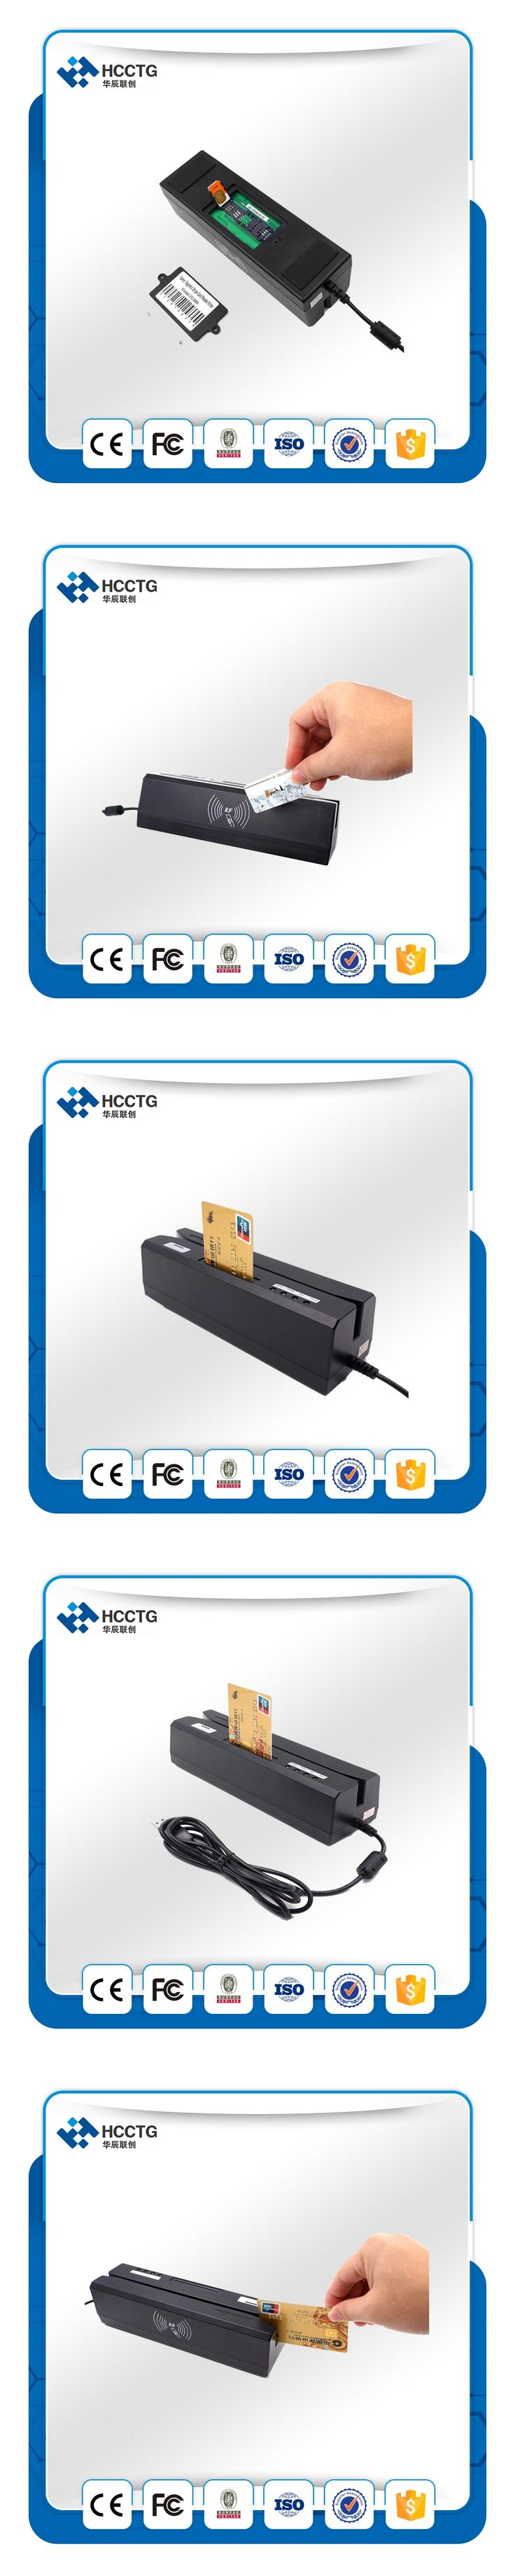 1MM Magnetic Head Credit Card NFC Card Reader Magnetic Stripe Card Reader Writer HCC80  With 10pcs Magnetic Cards